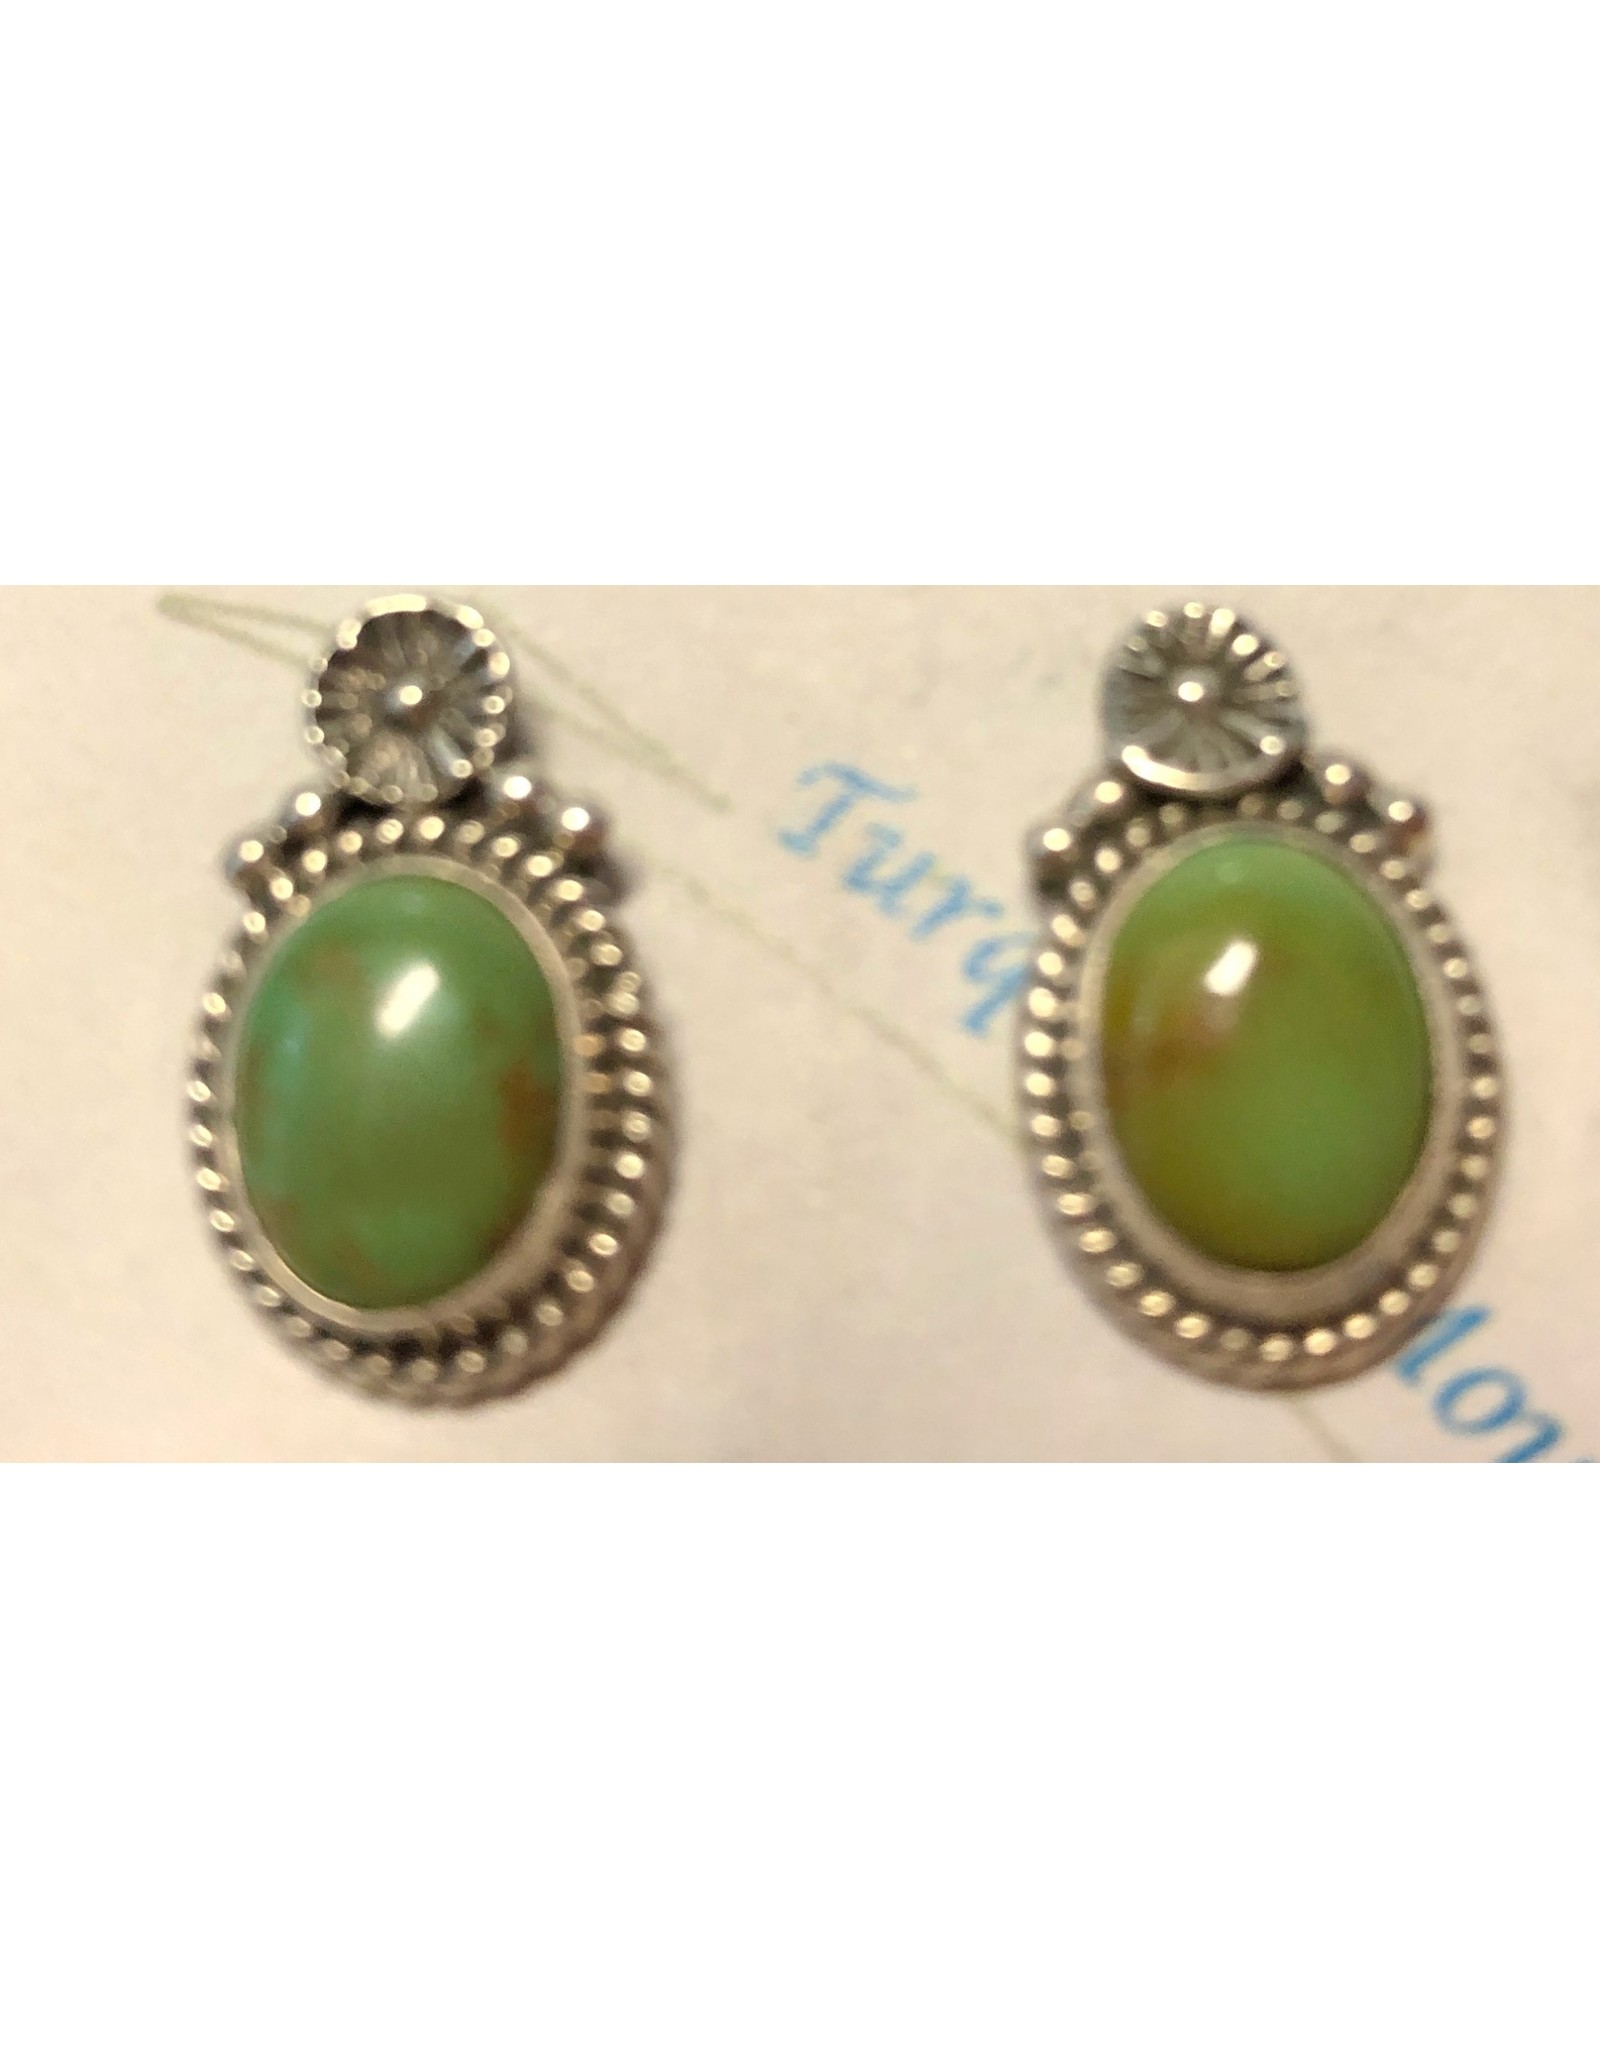 Rare Finds ROYSTON TURQUOISE & STERLING EARRINGS, post, Native American Artist Design, RARE